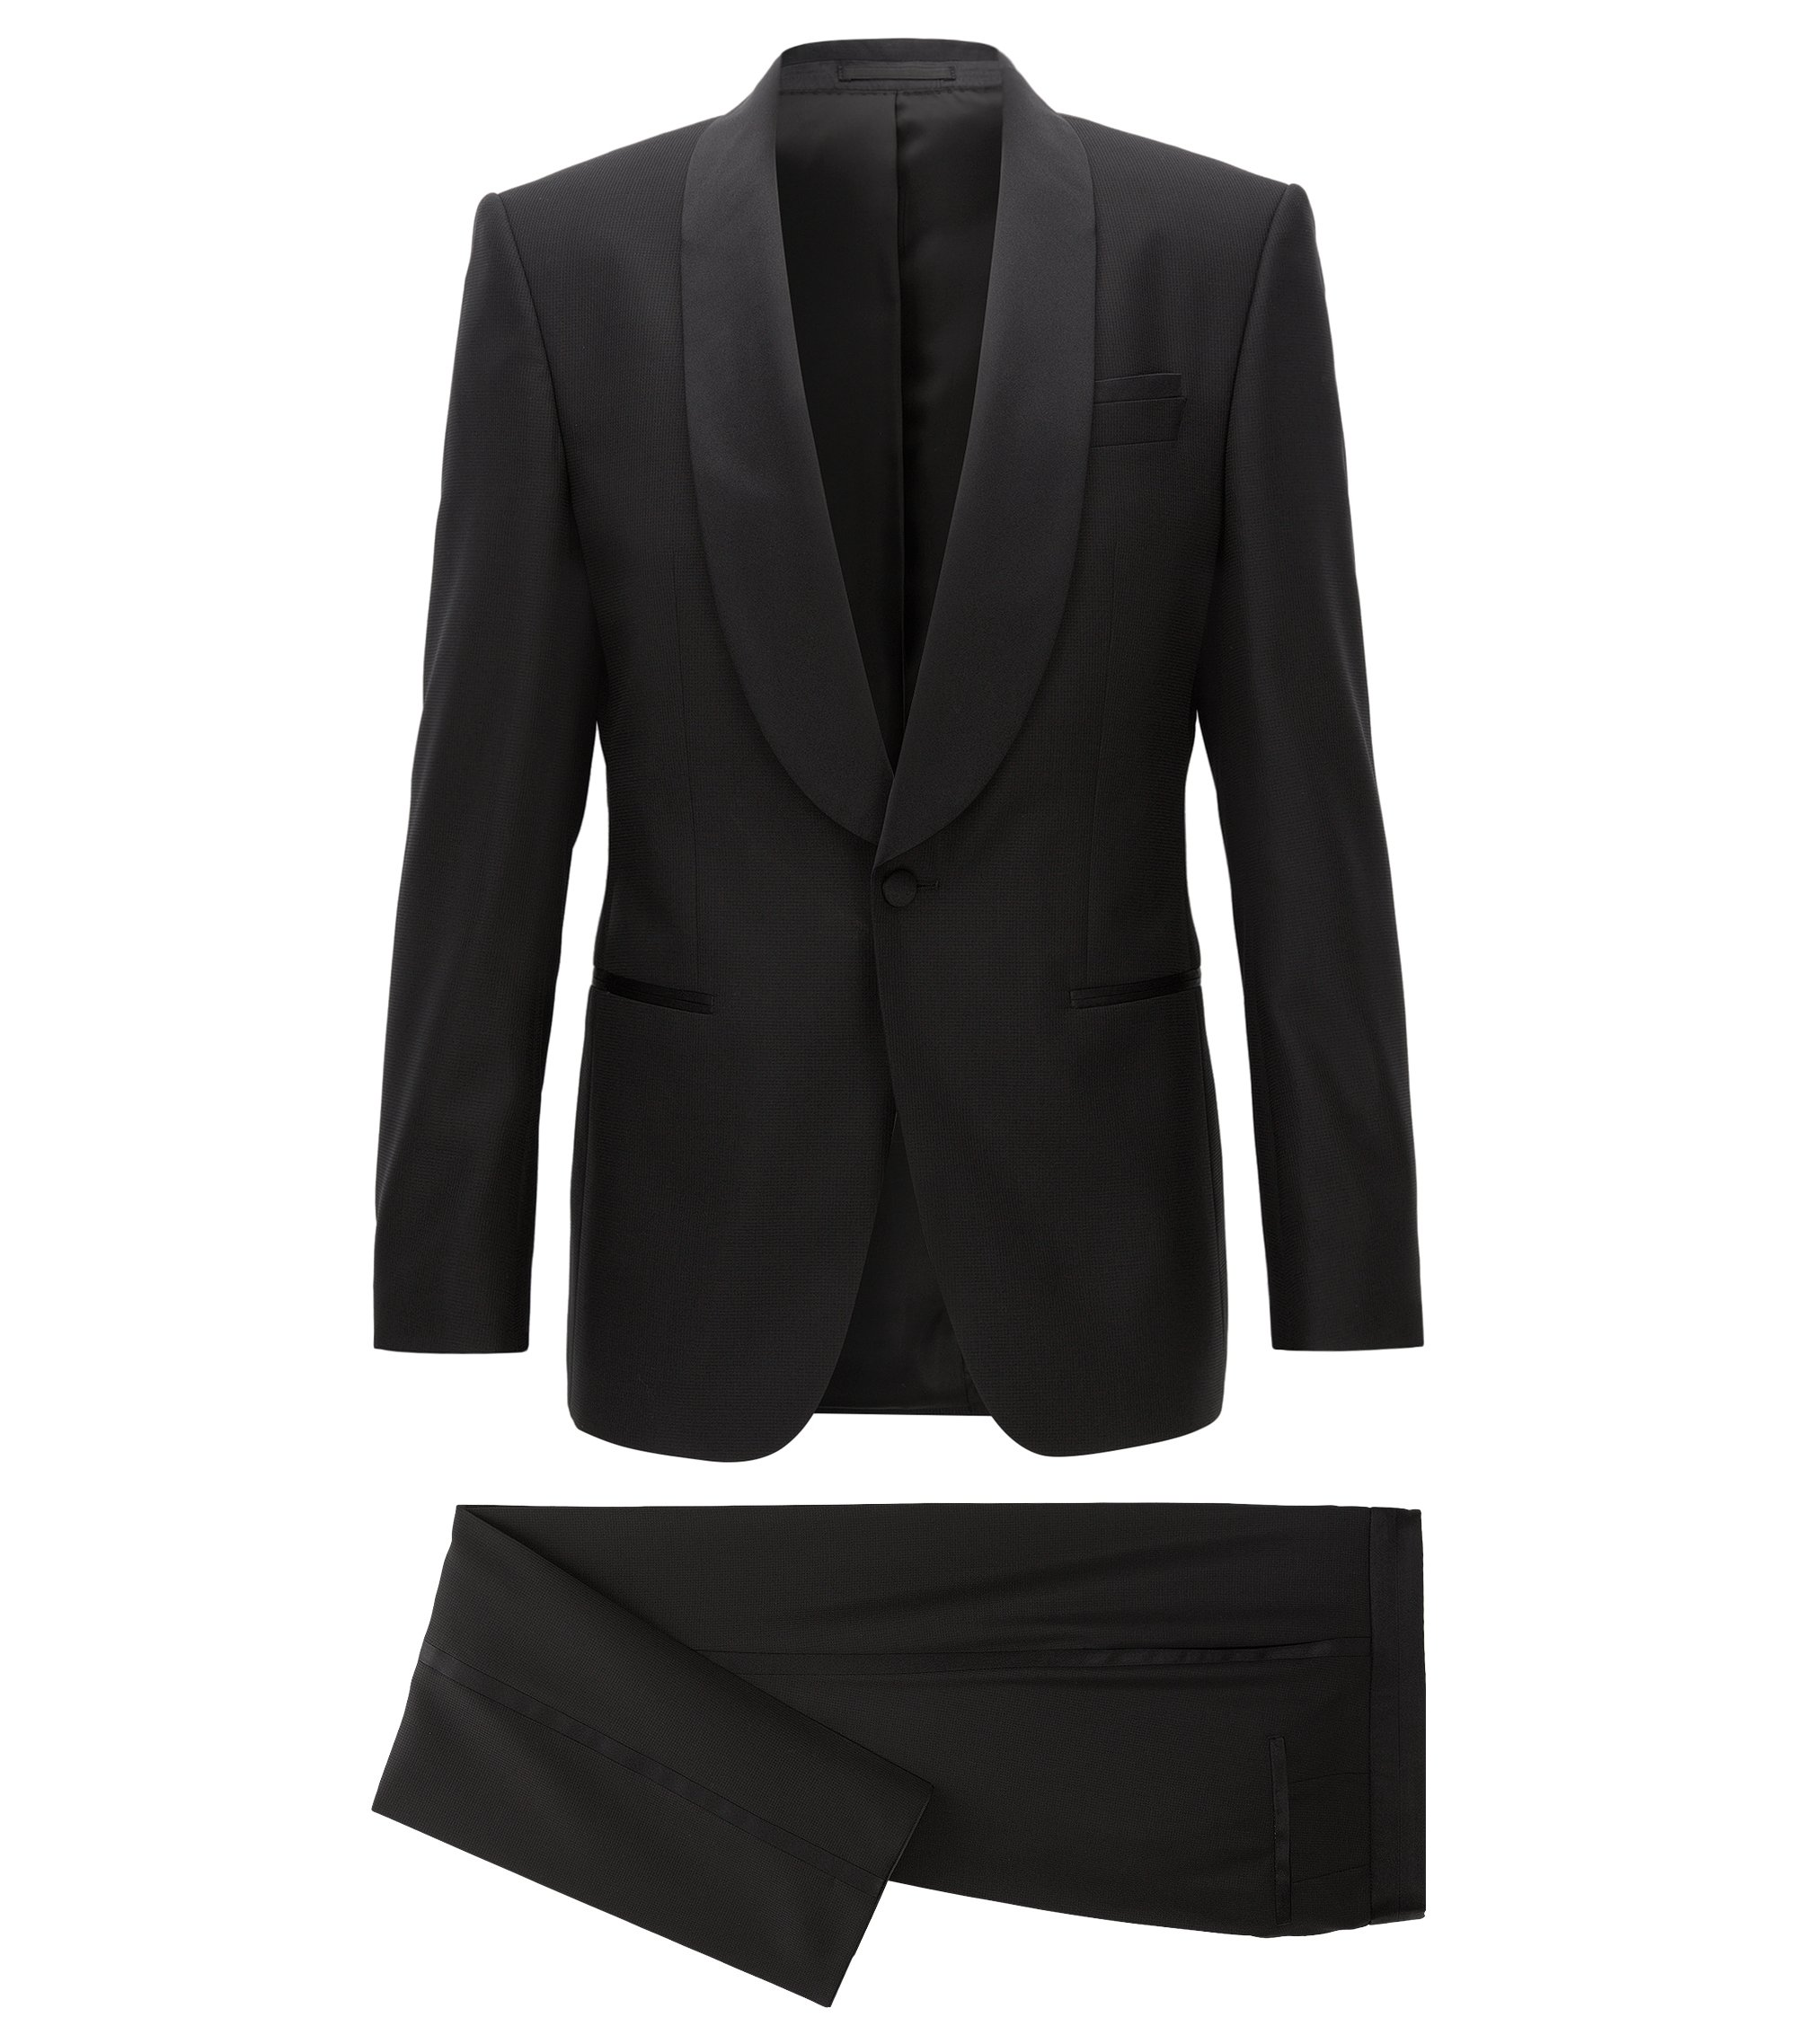 Virgin Wool-Silk Tuxedo, Slim Fit | Herwyn/Gewon, Black